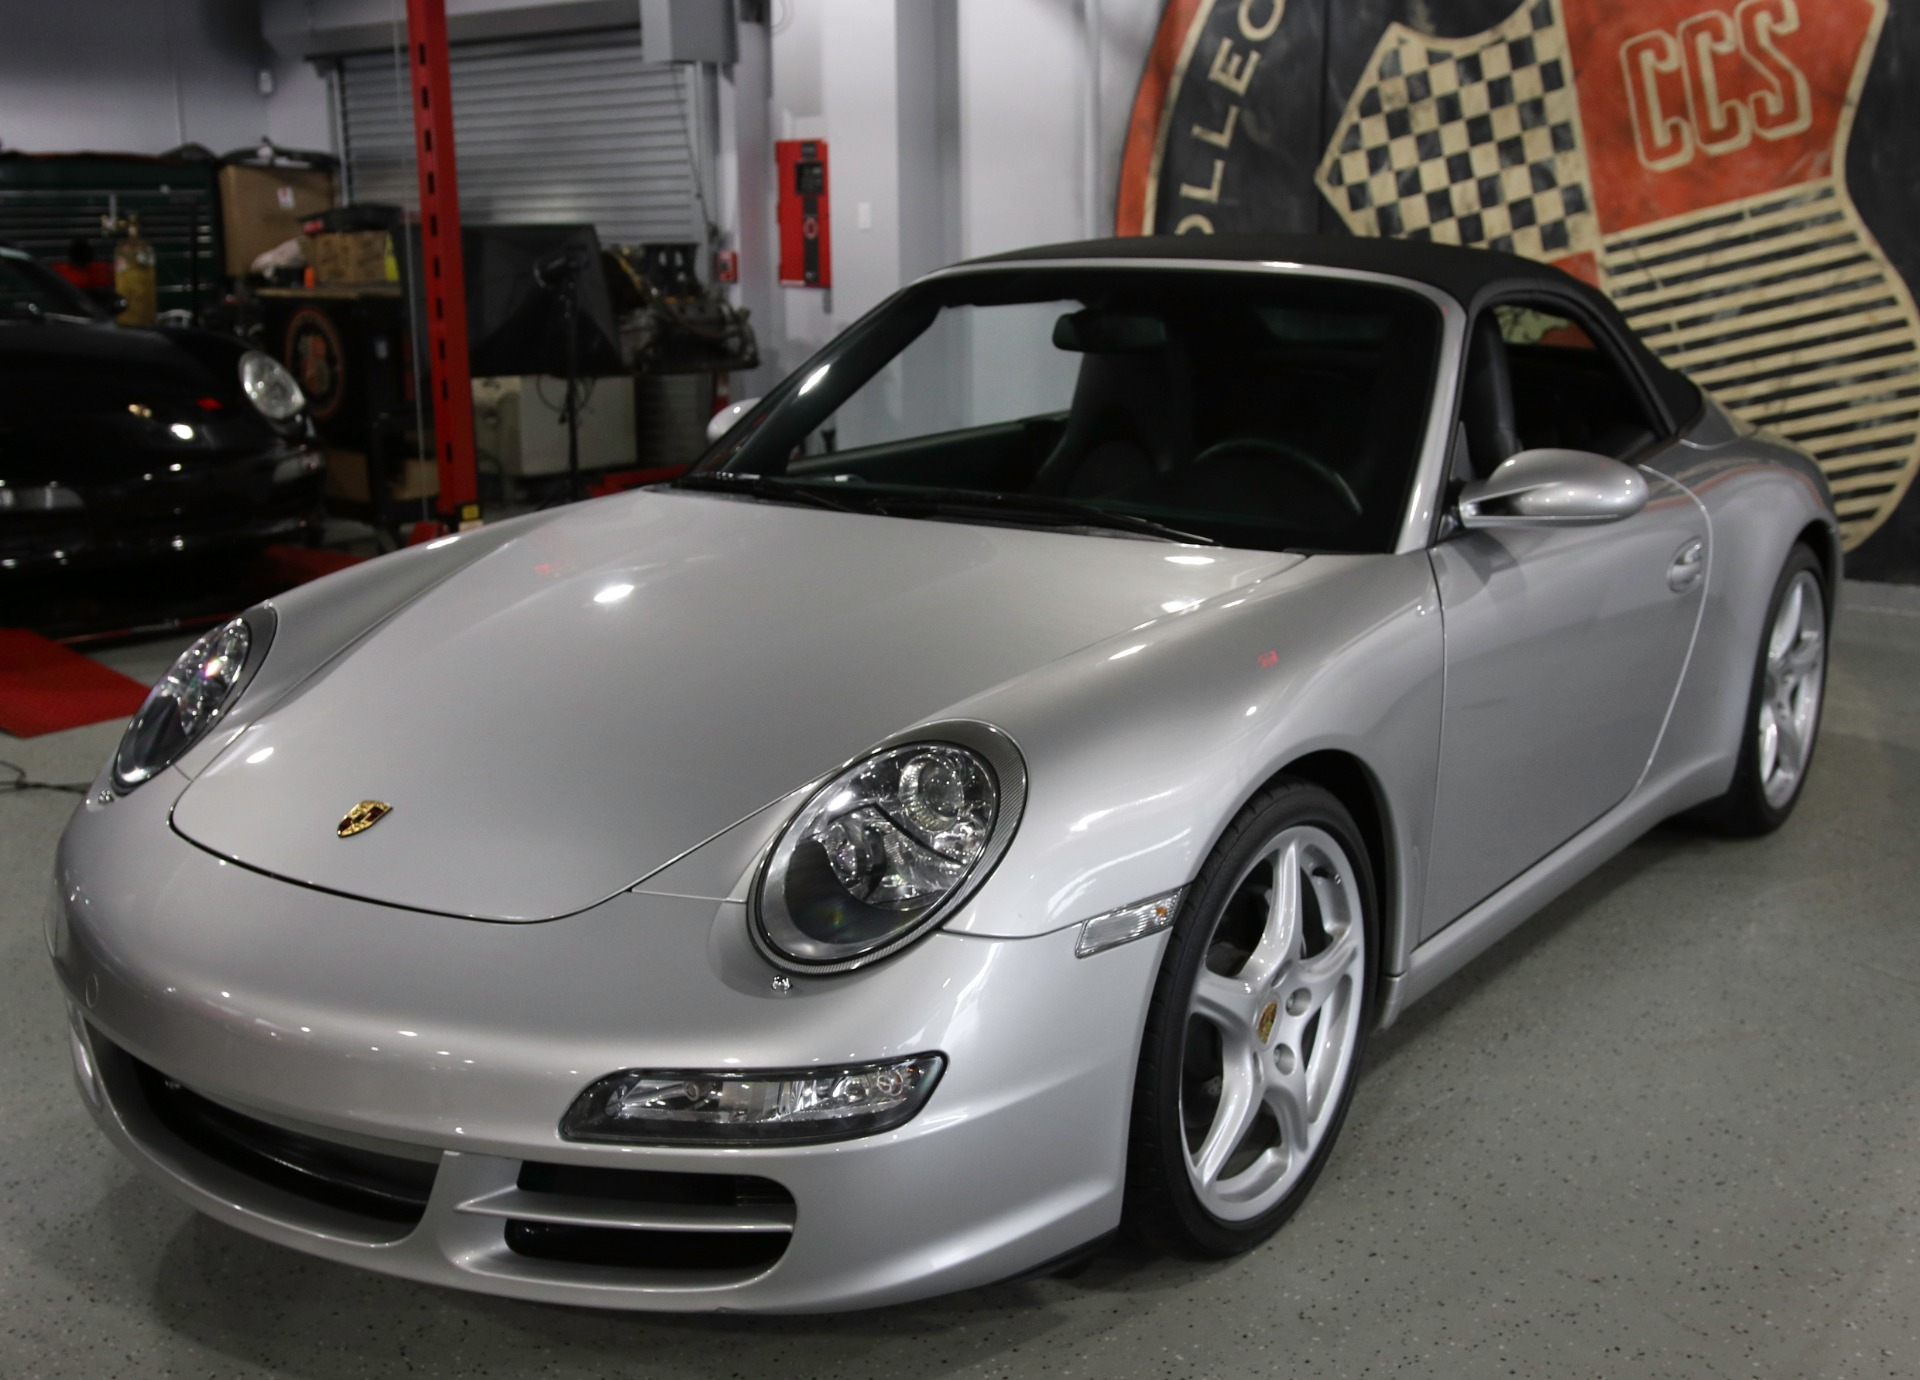 2005 porsche 911 carrera cabriolet stock 1215 for sale. Black Bedroom Furniture Sets. Home Design Ideas